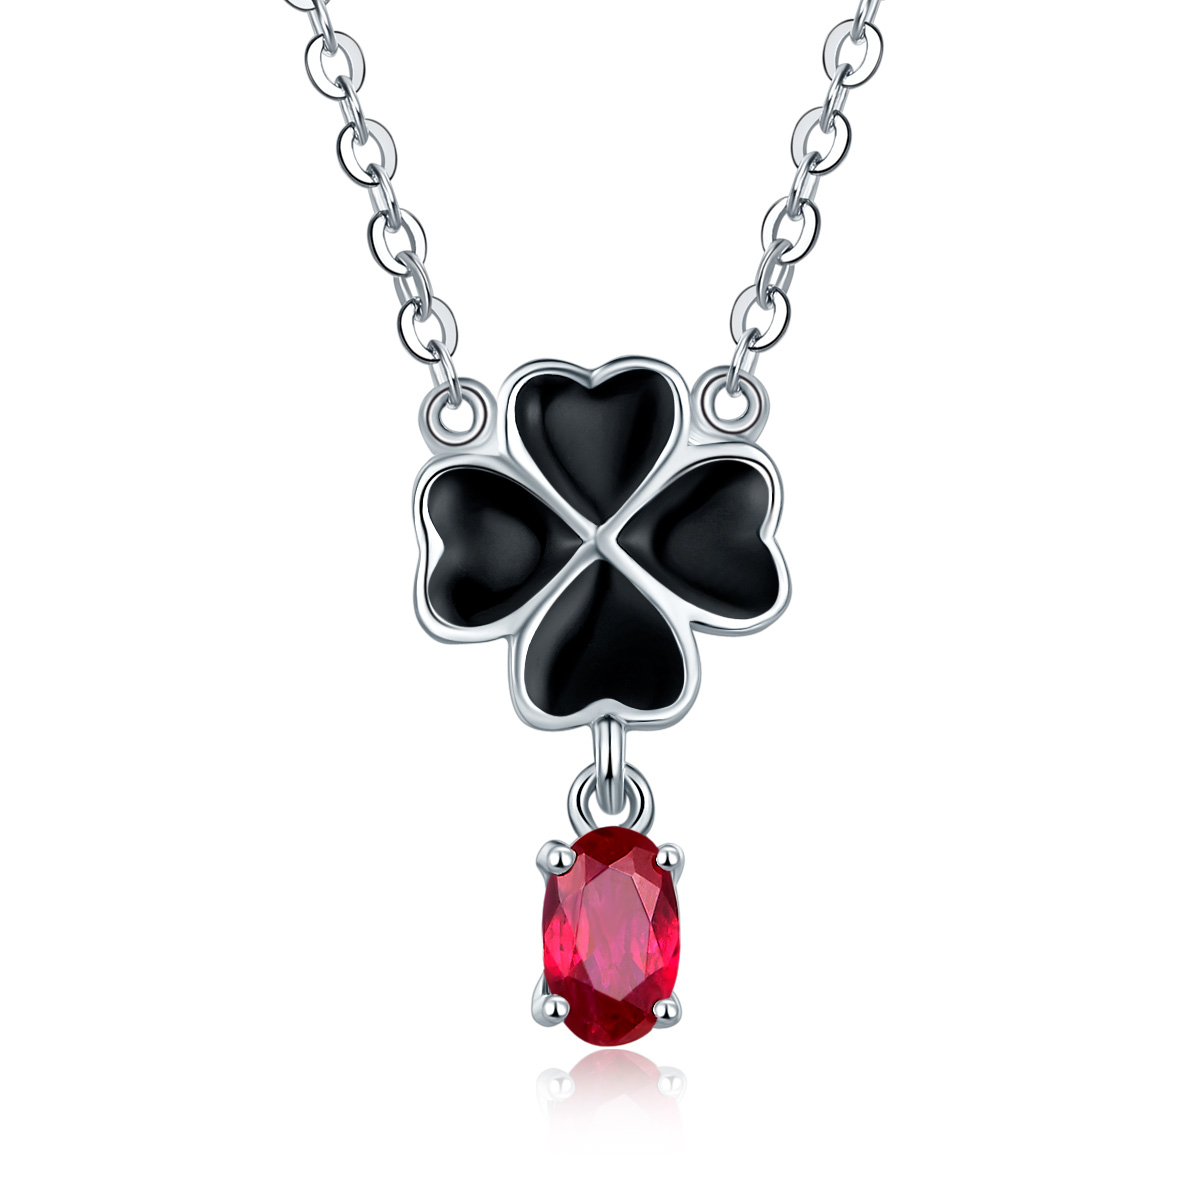 Hutang Four Leaf Clover Natural Ruby Pendant Necklace Solid 925 Sterling Silver Precious Gemstone Fine Jewelry for Women Gift trendy four leaf clover shape pendant necklace for women